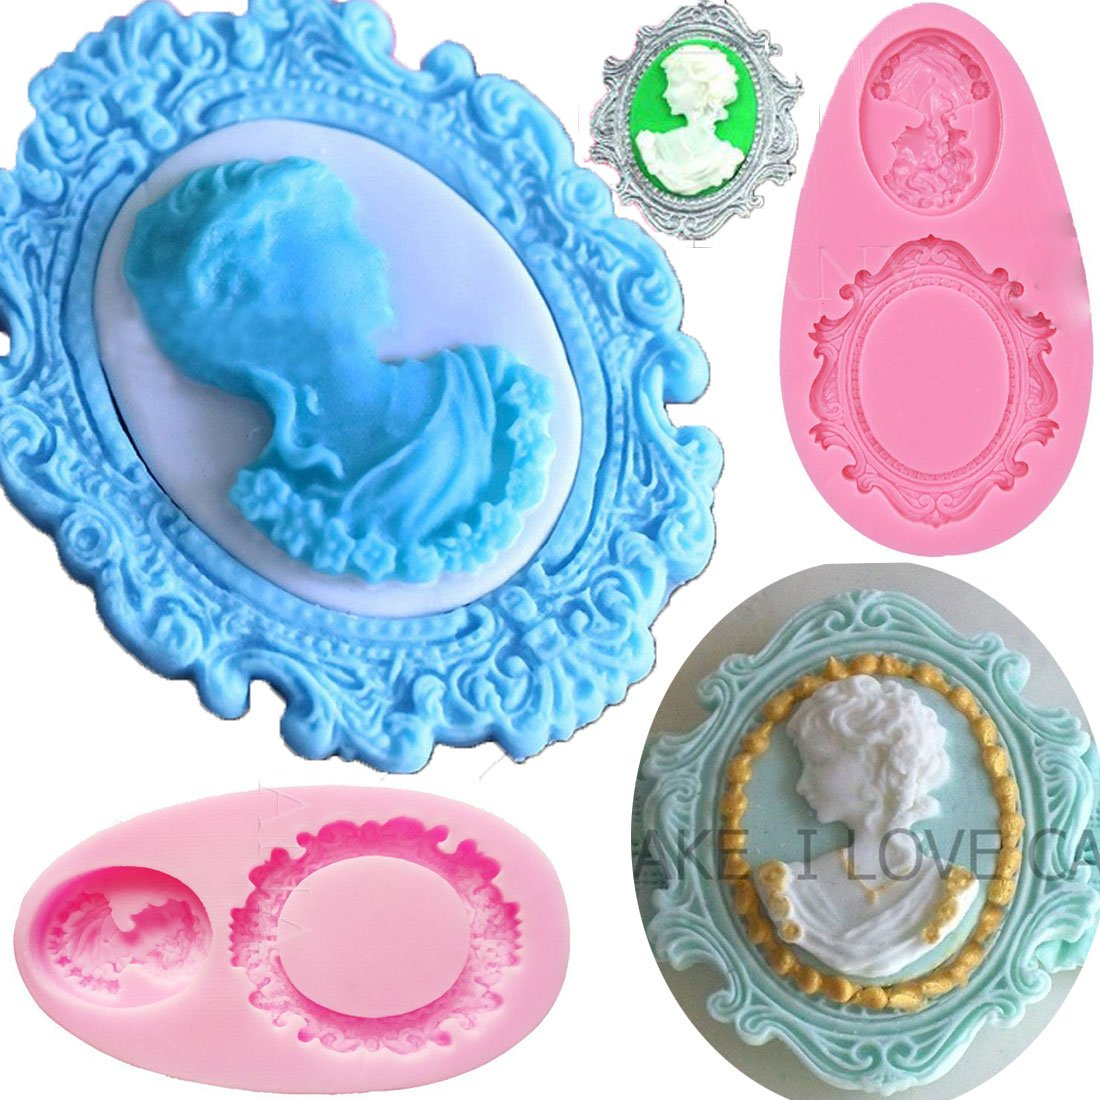 Anyana Vintage Queen's Icon victorian Picture oval cameo Frame Photo mirror mould cake Fondant silicone gum paste mold for Sugar paste wedding cupcake decorating topper decoration sugarcraft decor aie467a